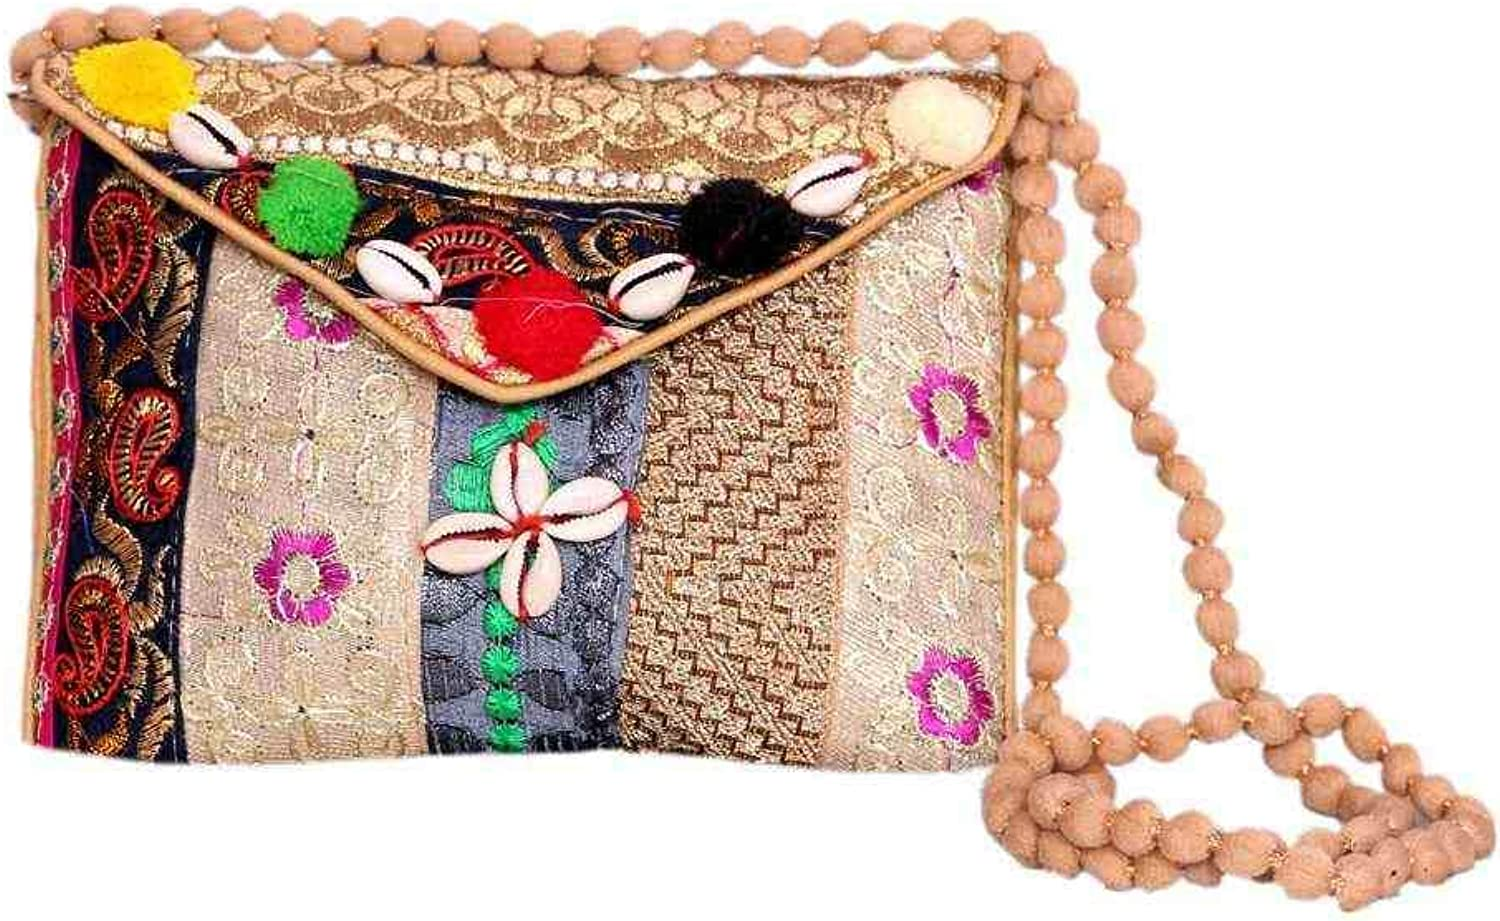 Wholesale 50 pc lot Bulk Indian Vintage Hand Bag Traditional Bridal Clutch Beaded Shoulder Bag potli Pouch Hand Bag Purses Women Purse by Craft place-50